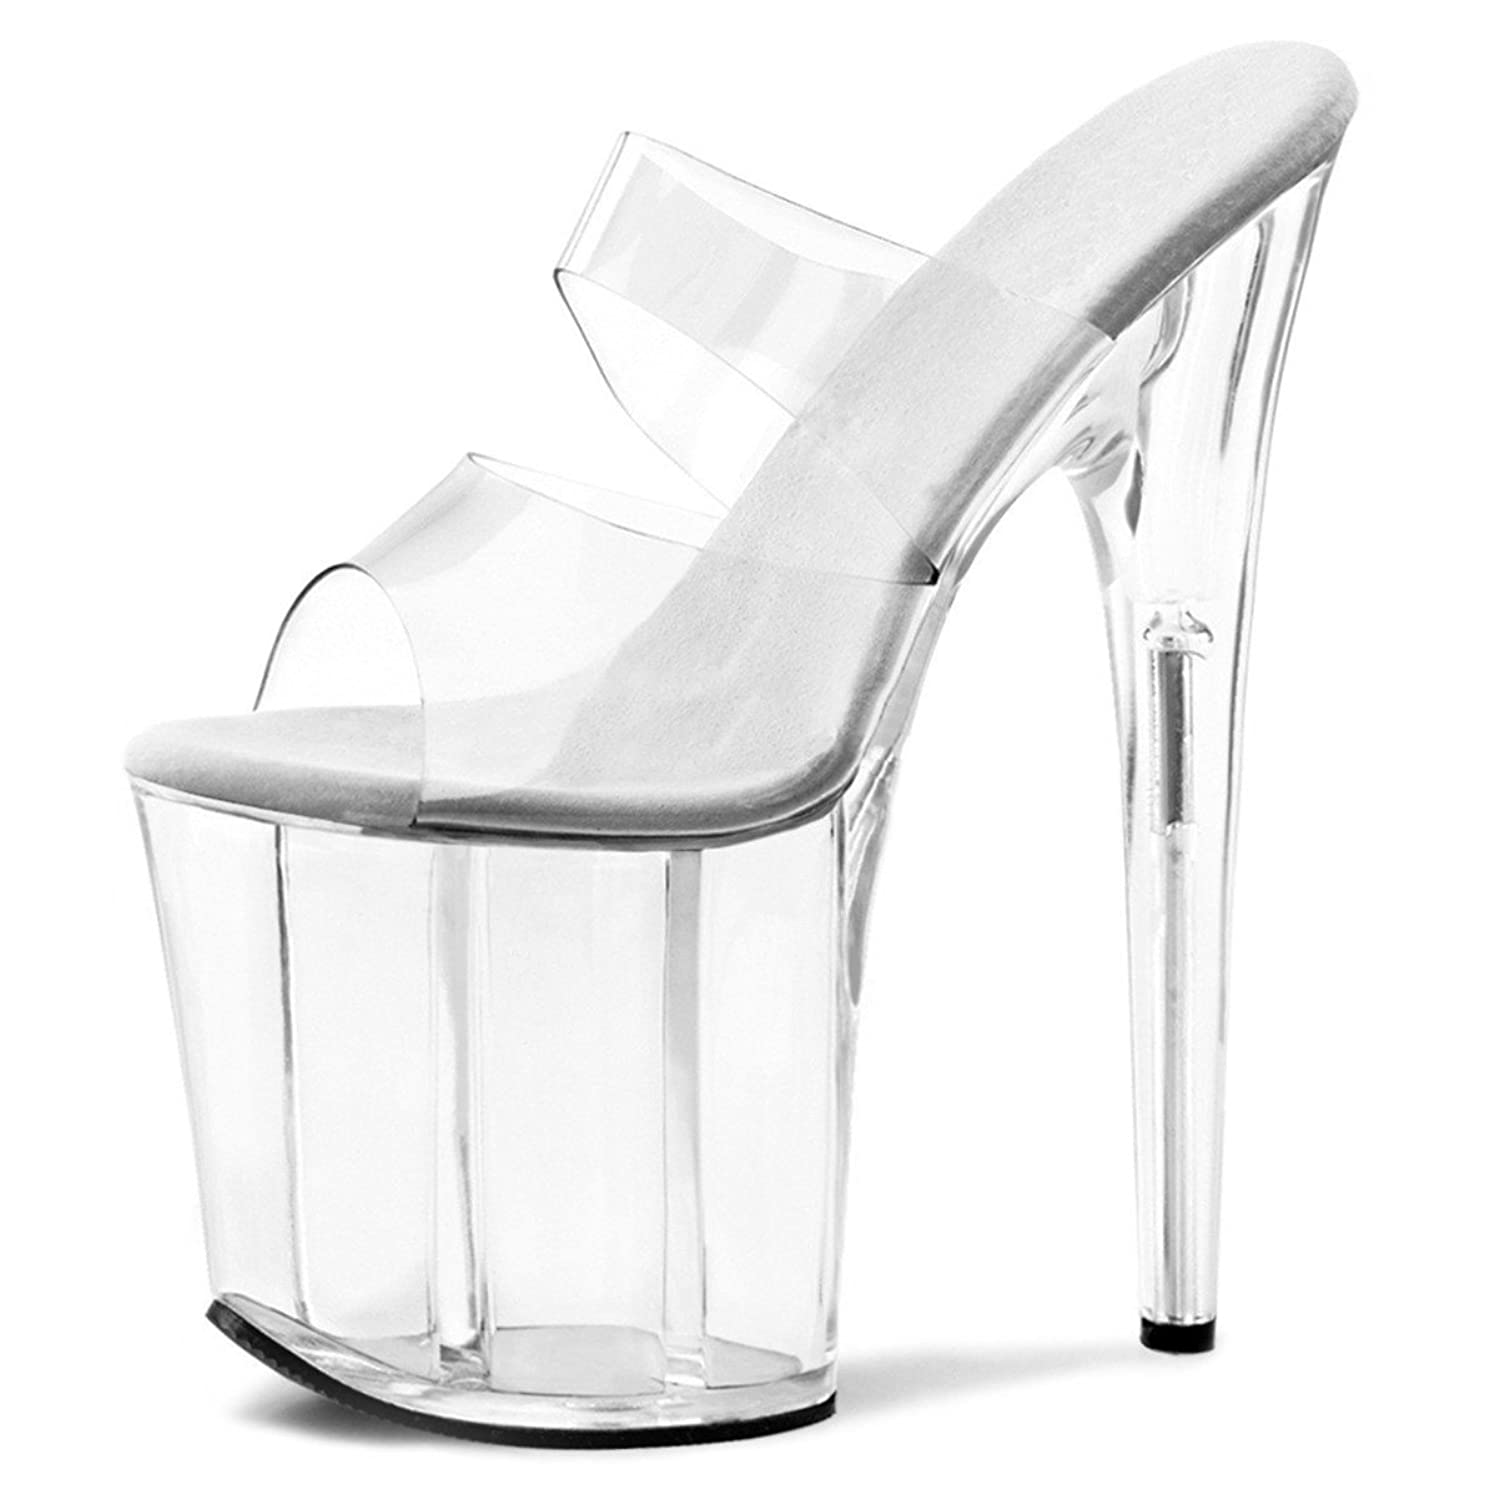 Womens 8 Inch Heels Clear Double Strap High Platform Sandals Dancer Slide Shoes B002YPH16K 5 B(M) US